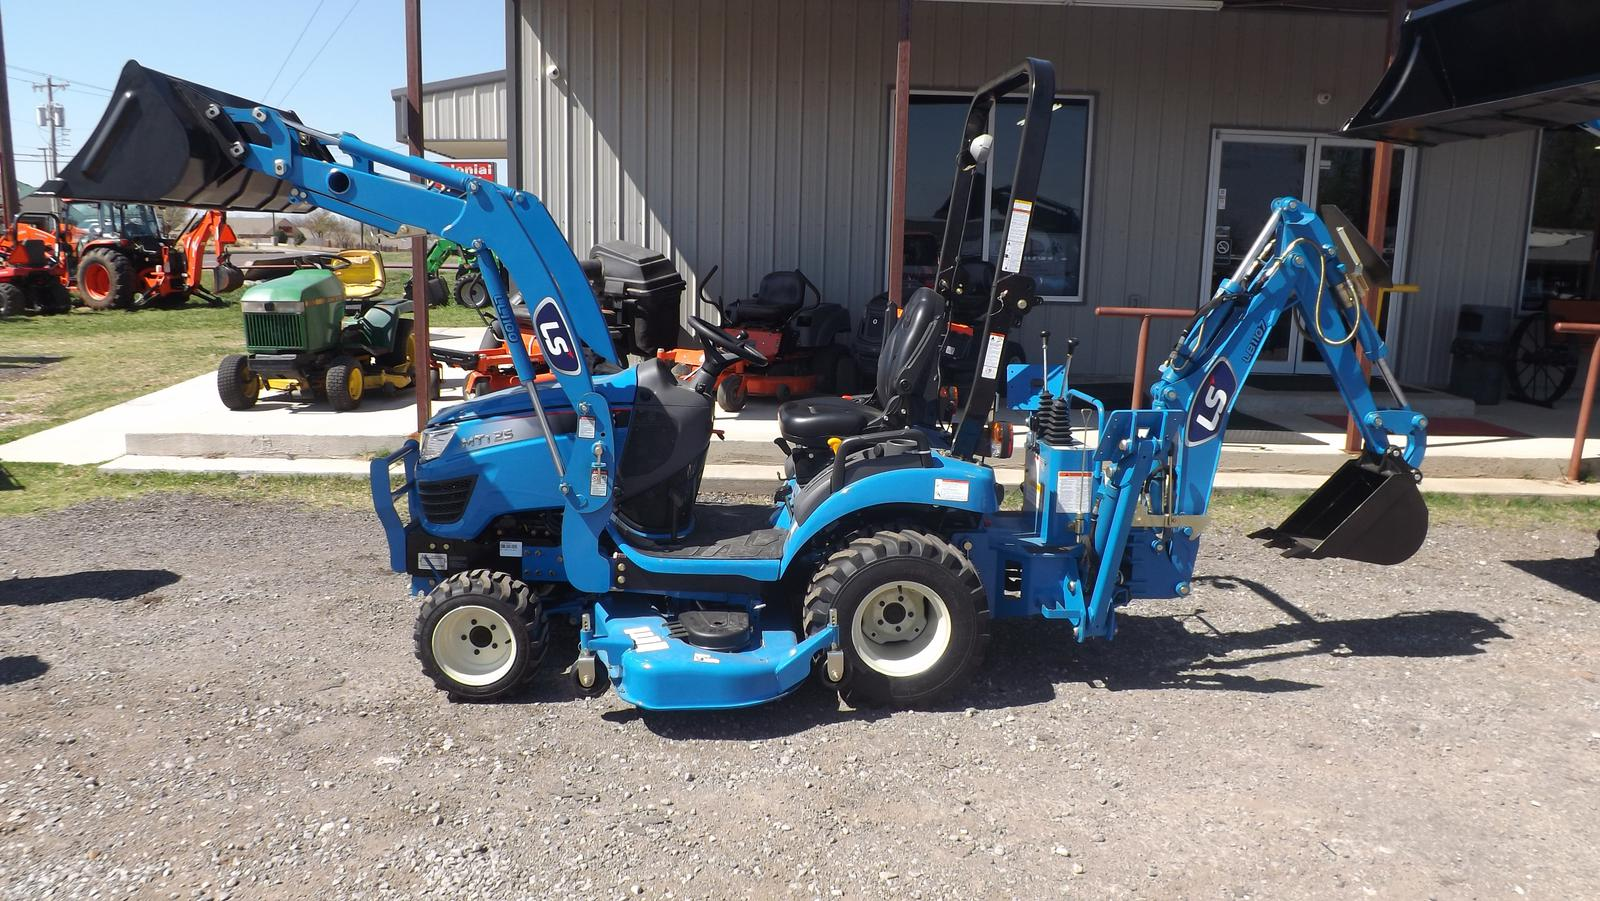 2018 LS Tractor MT125 for sale in Oklahoma City, OK  Wright Tractors